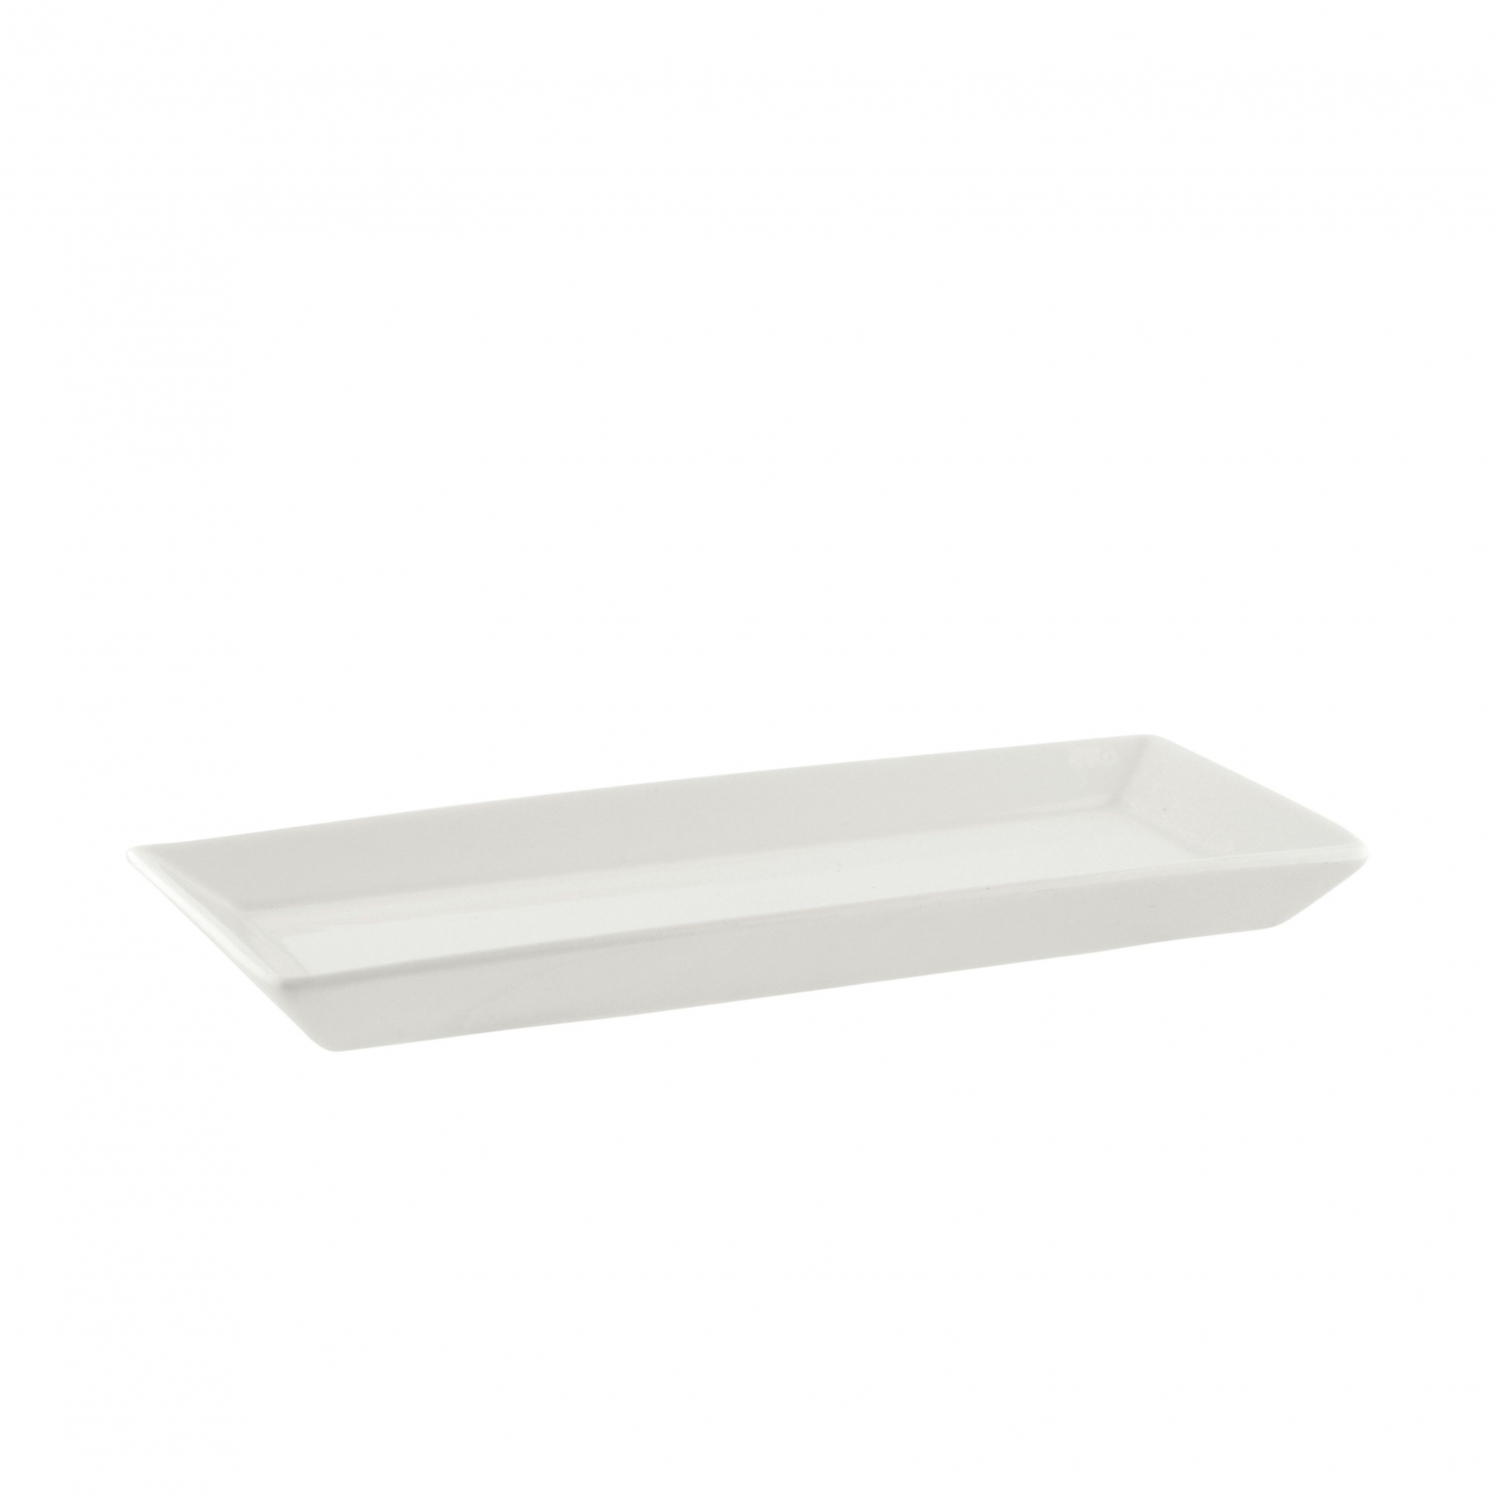 "10 Strawberry Street WTR-37REC Whittier Rectangular Platter 6-3/4"" x 2-3/4"""